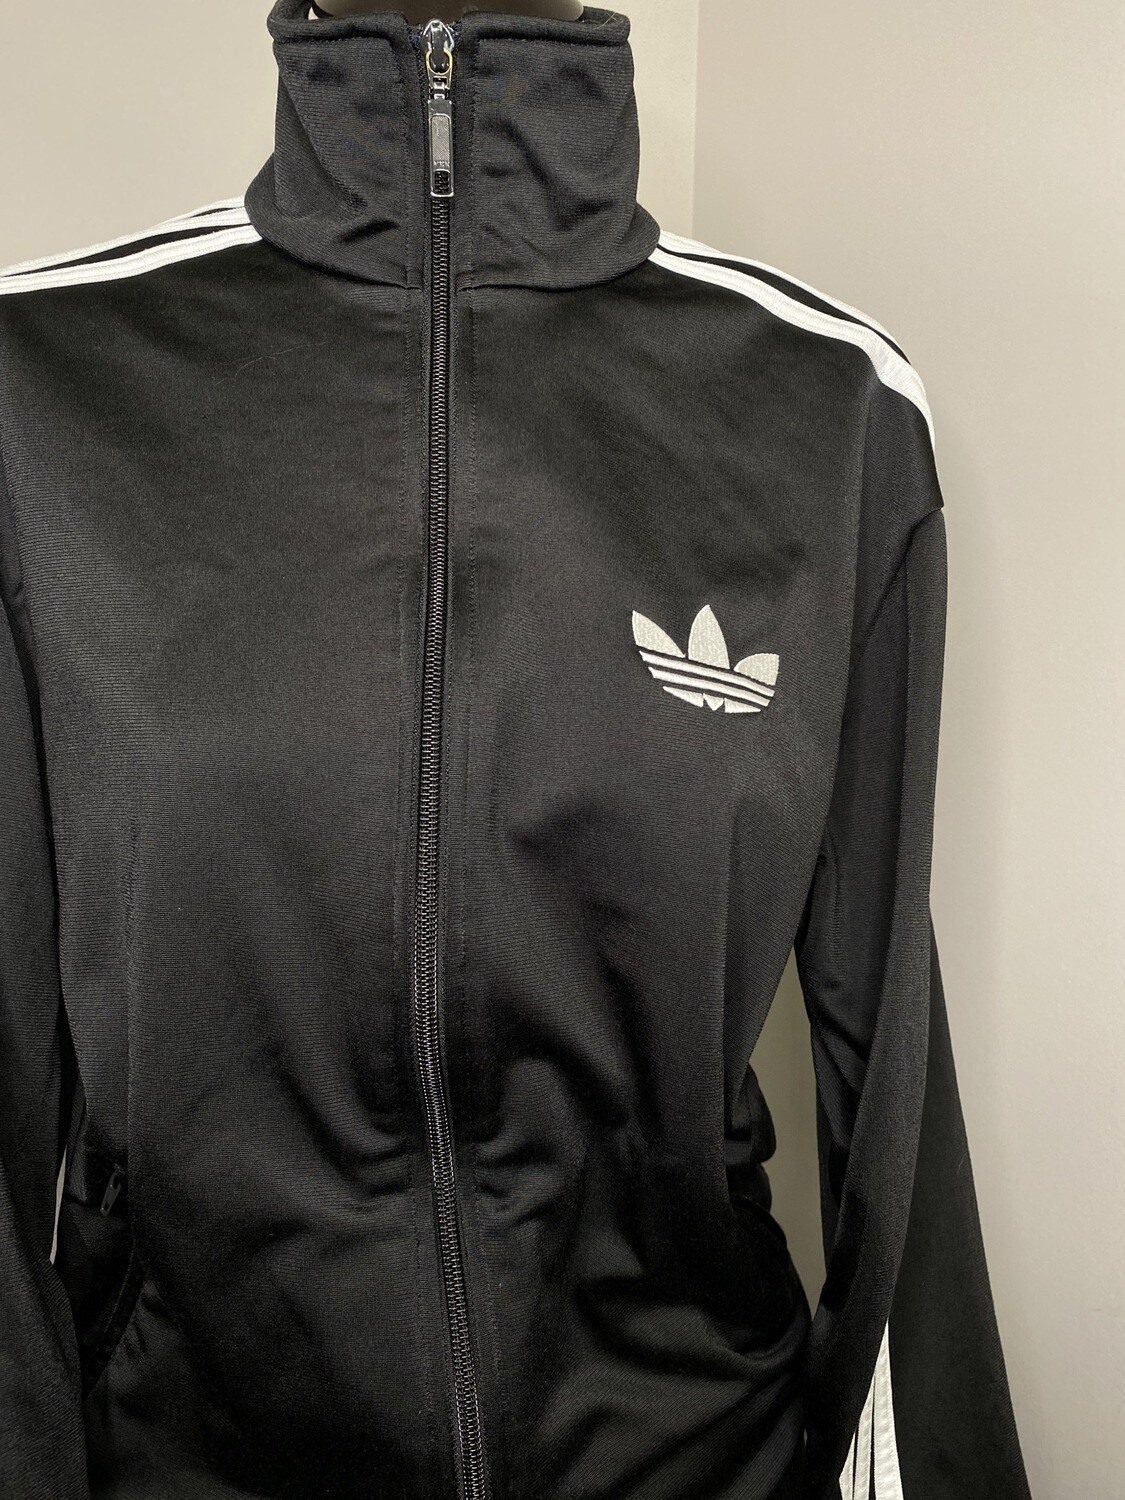 Vintage Adidas Originals Jacket- Unisex